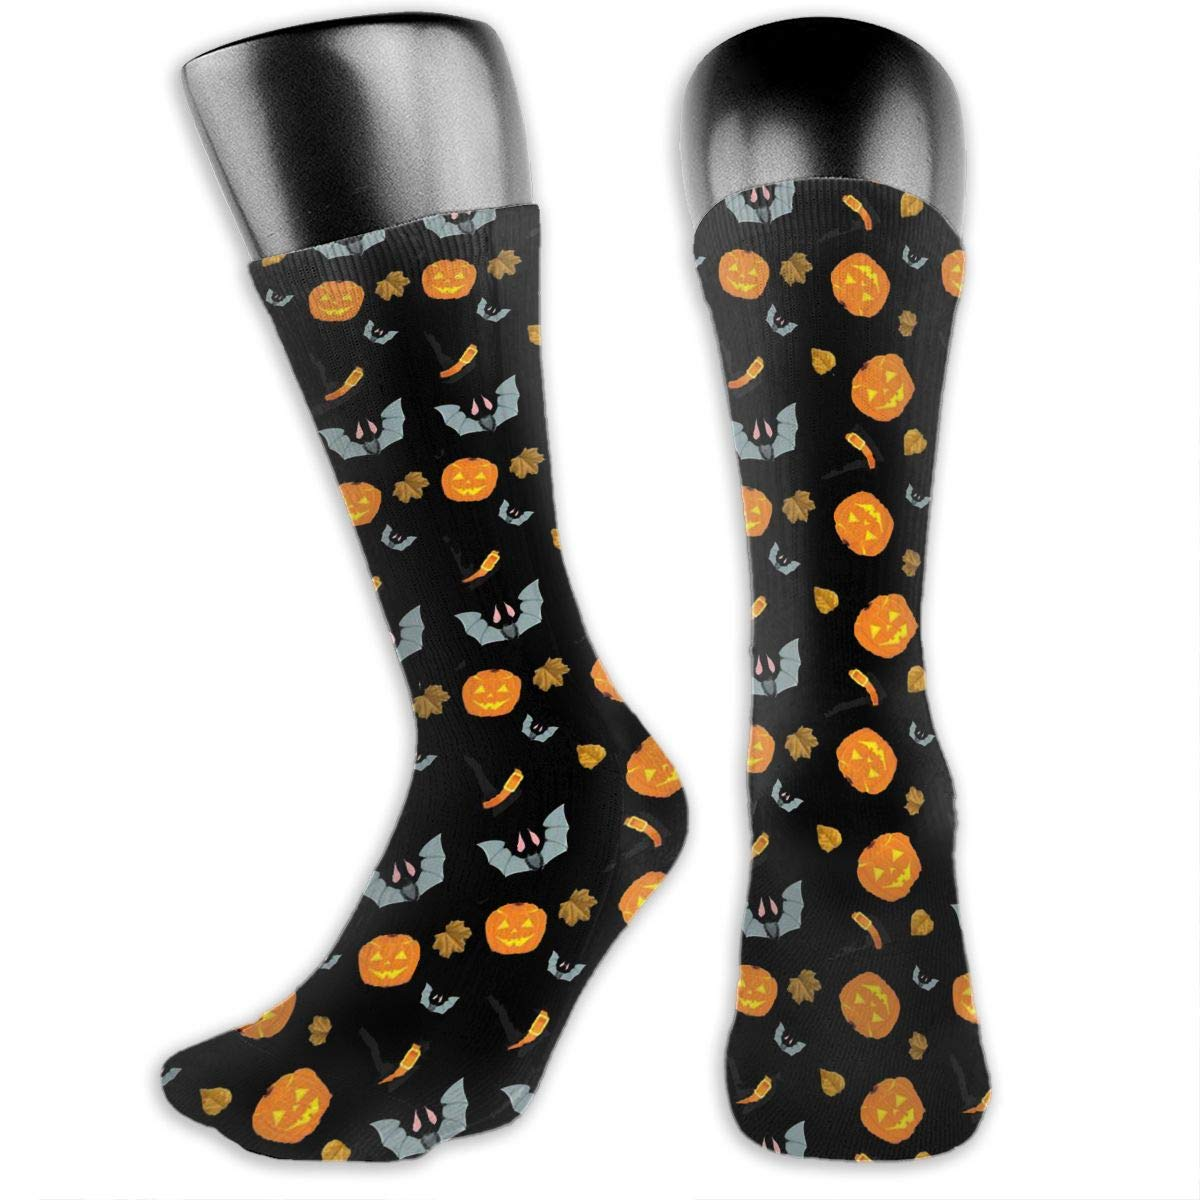 Heart Grey Yellow Cotton Casual Colorful Fun Below Knee High Athletic Socks